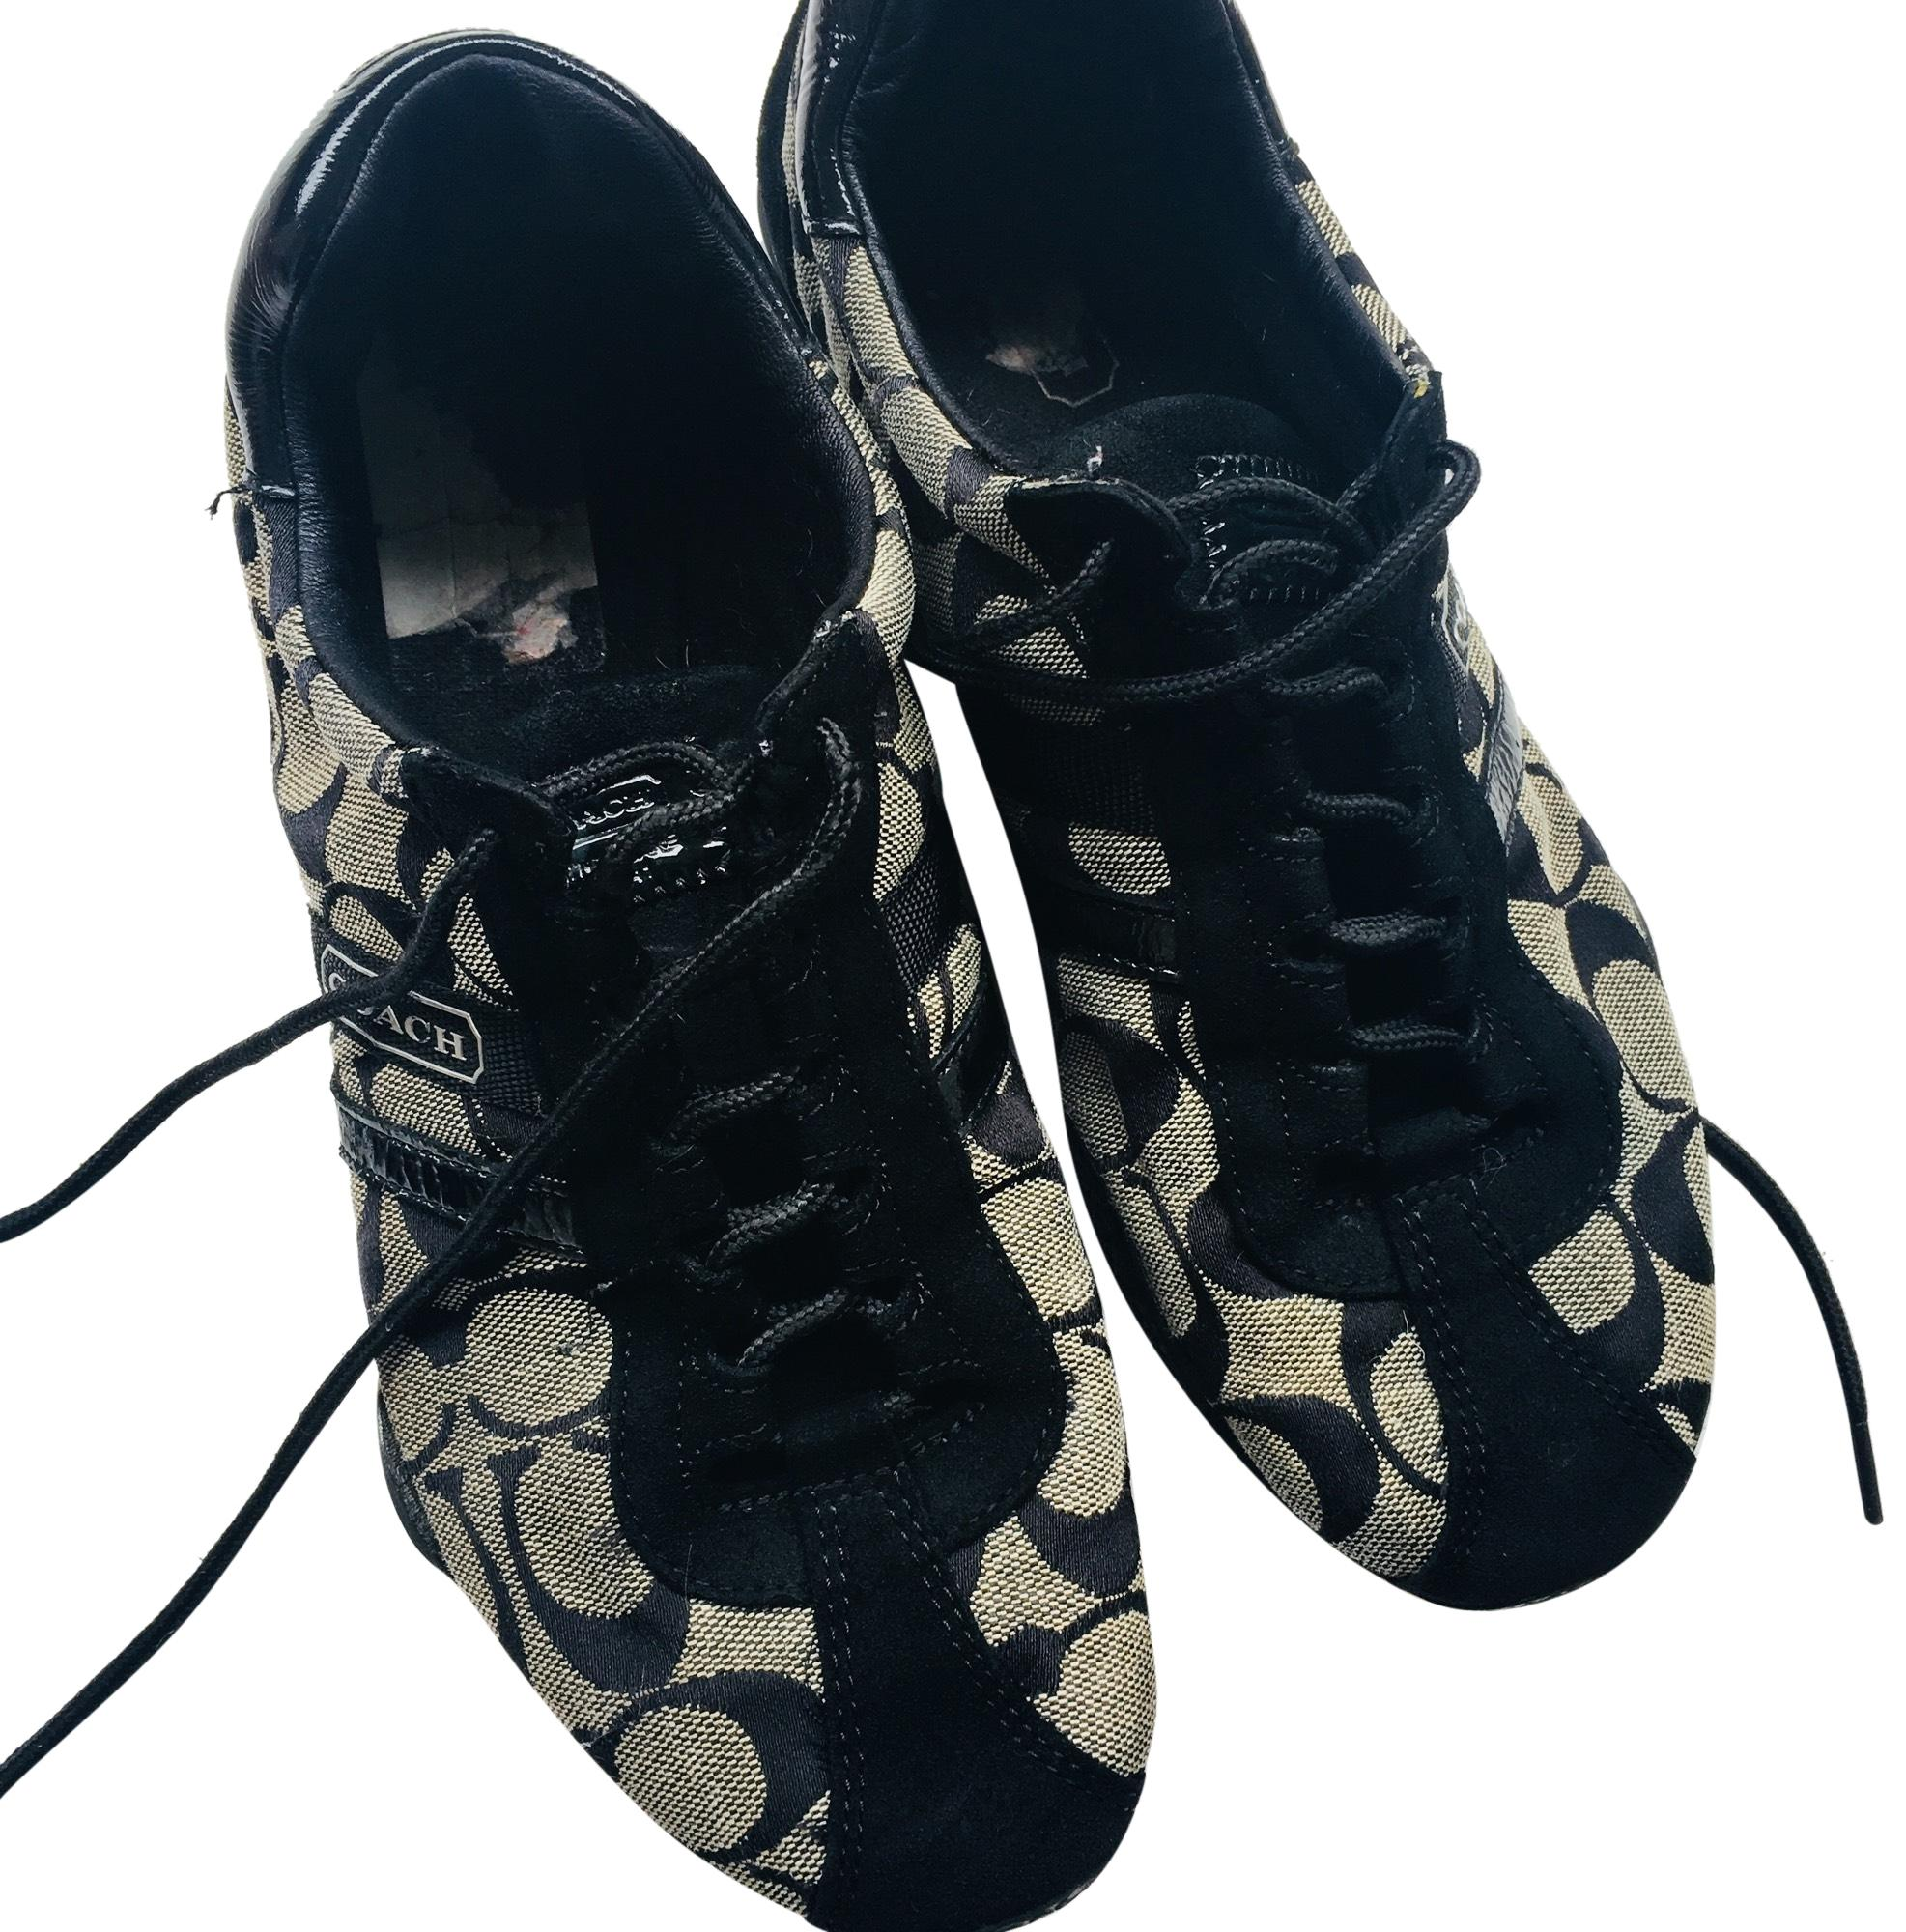 443782a909b ... coupon code for coach sneakers up to 90 off at tradesy 63a8a 8bc9f